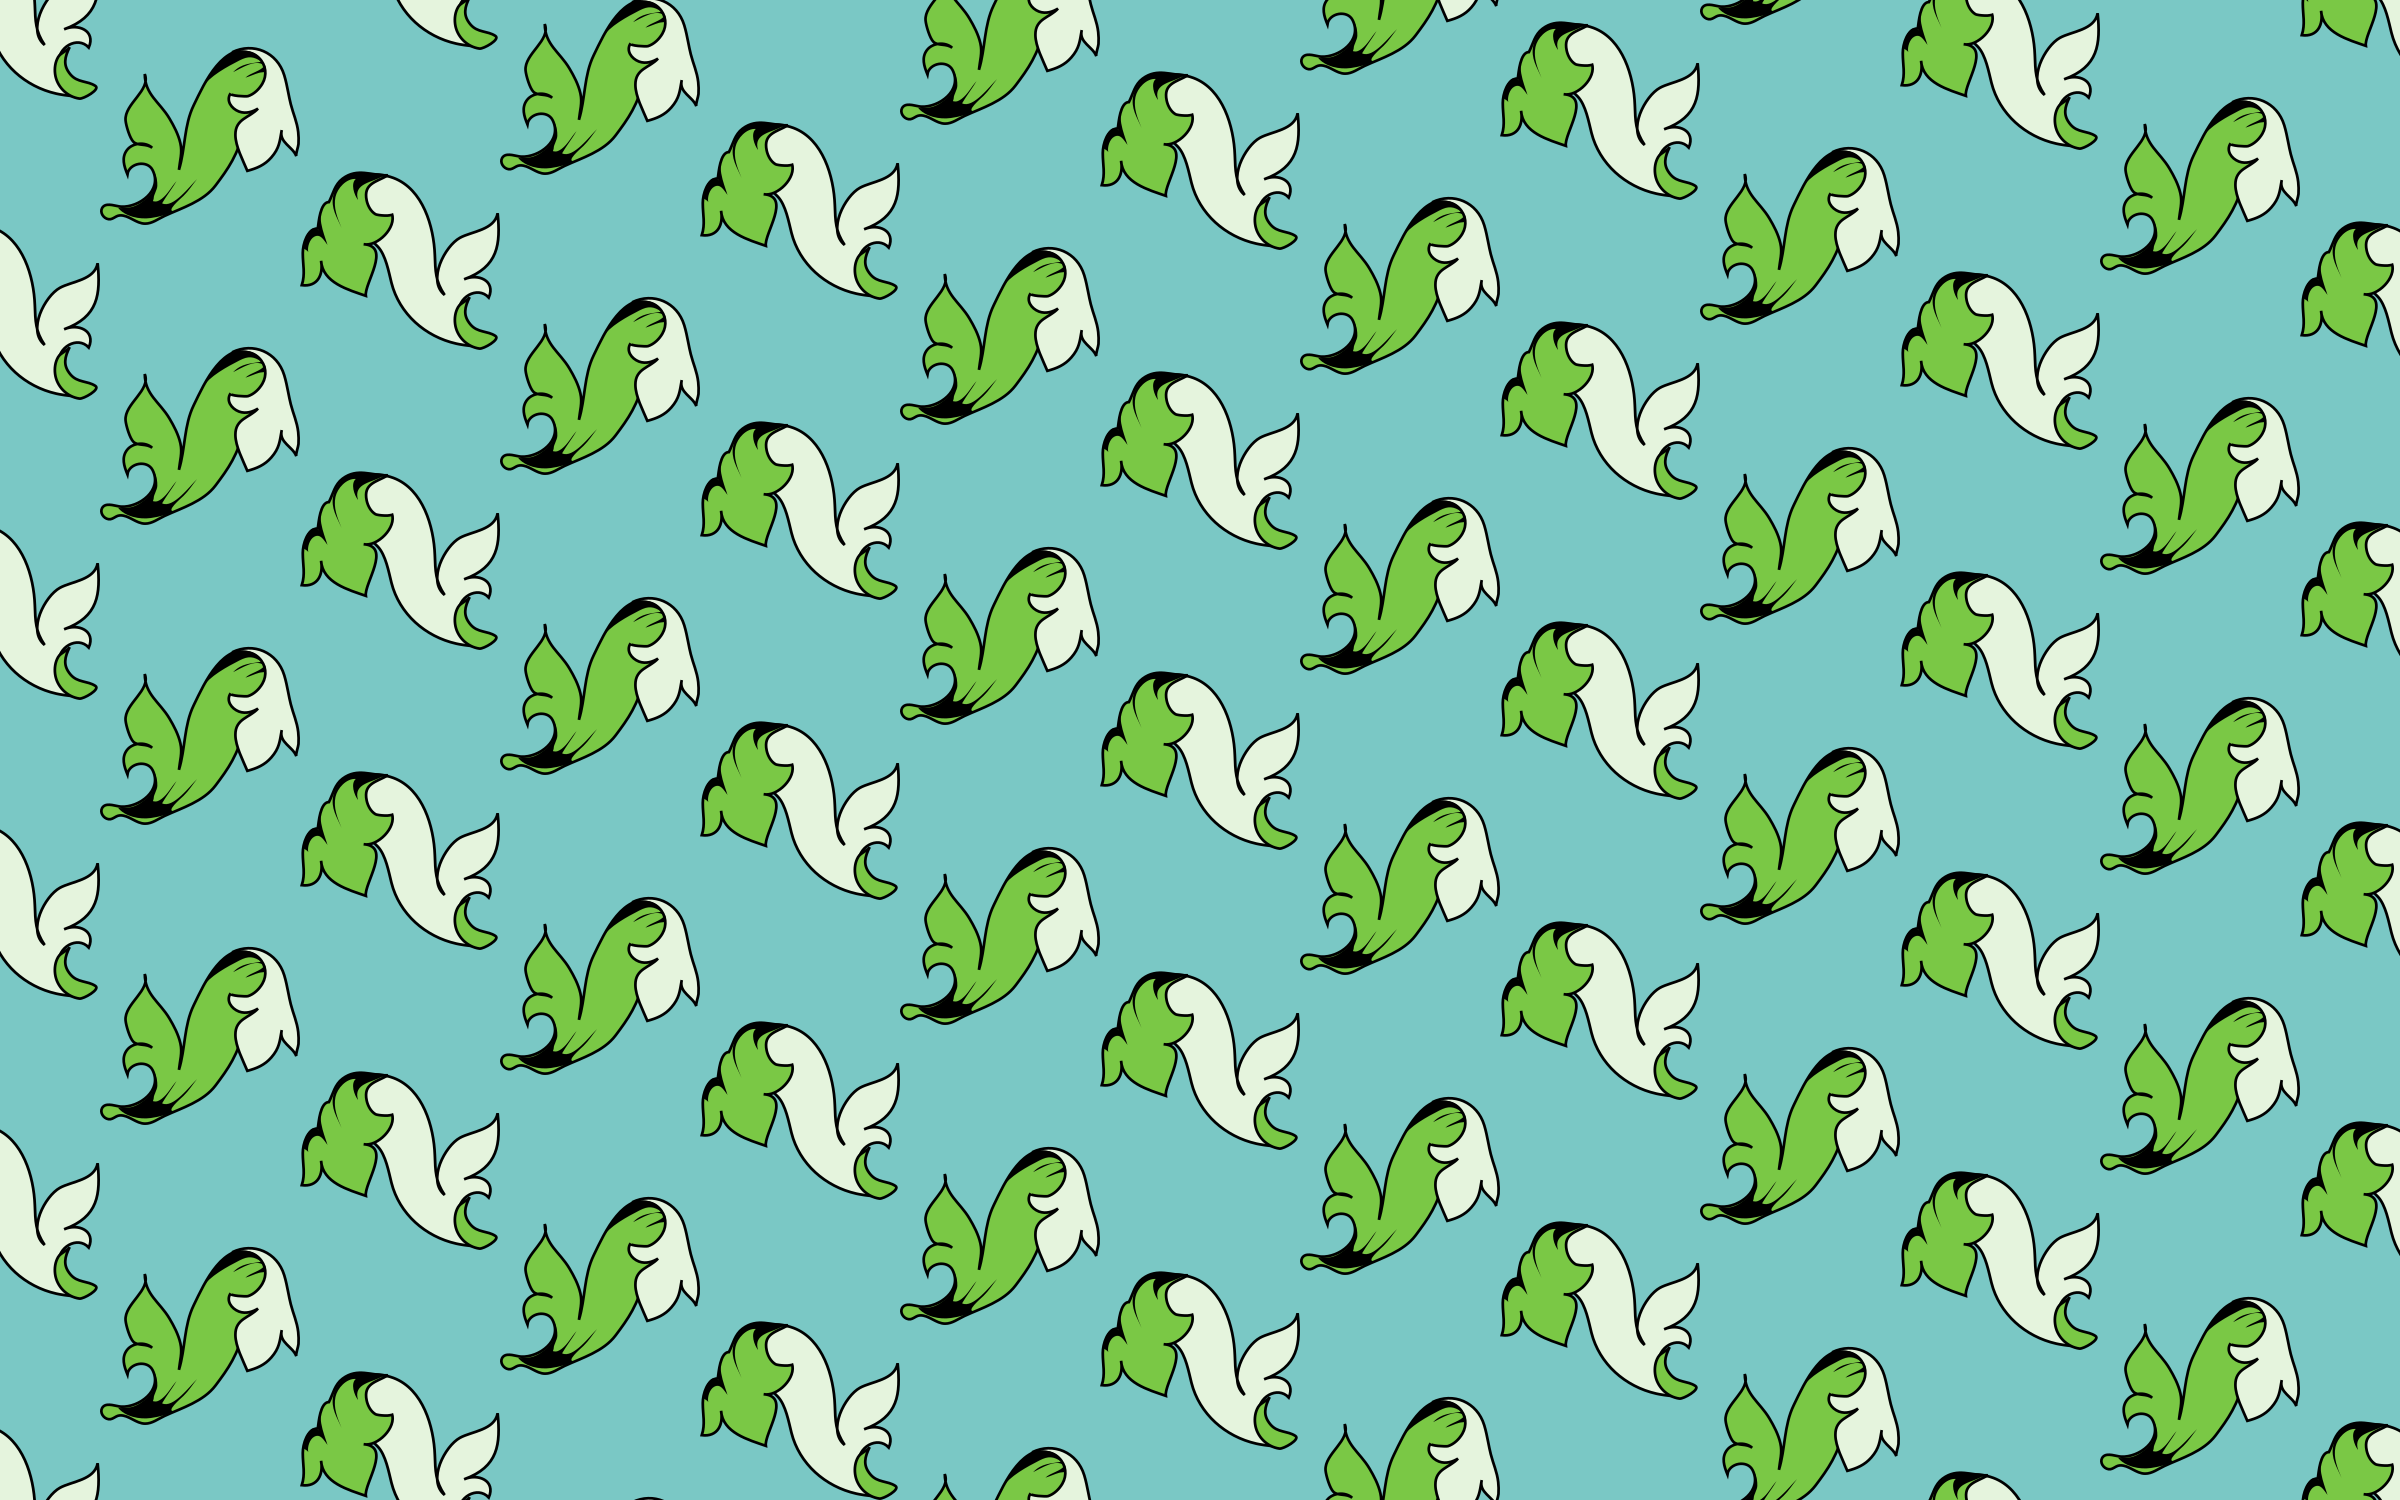 Background pattern 92 by Firkin